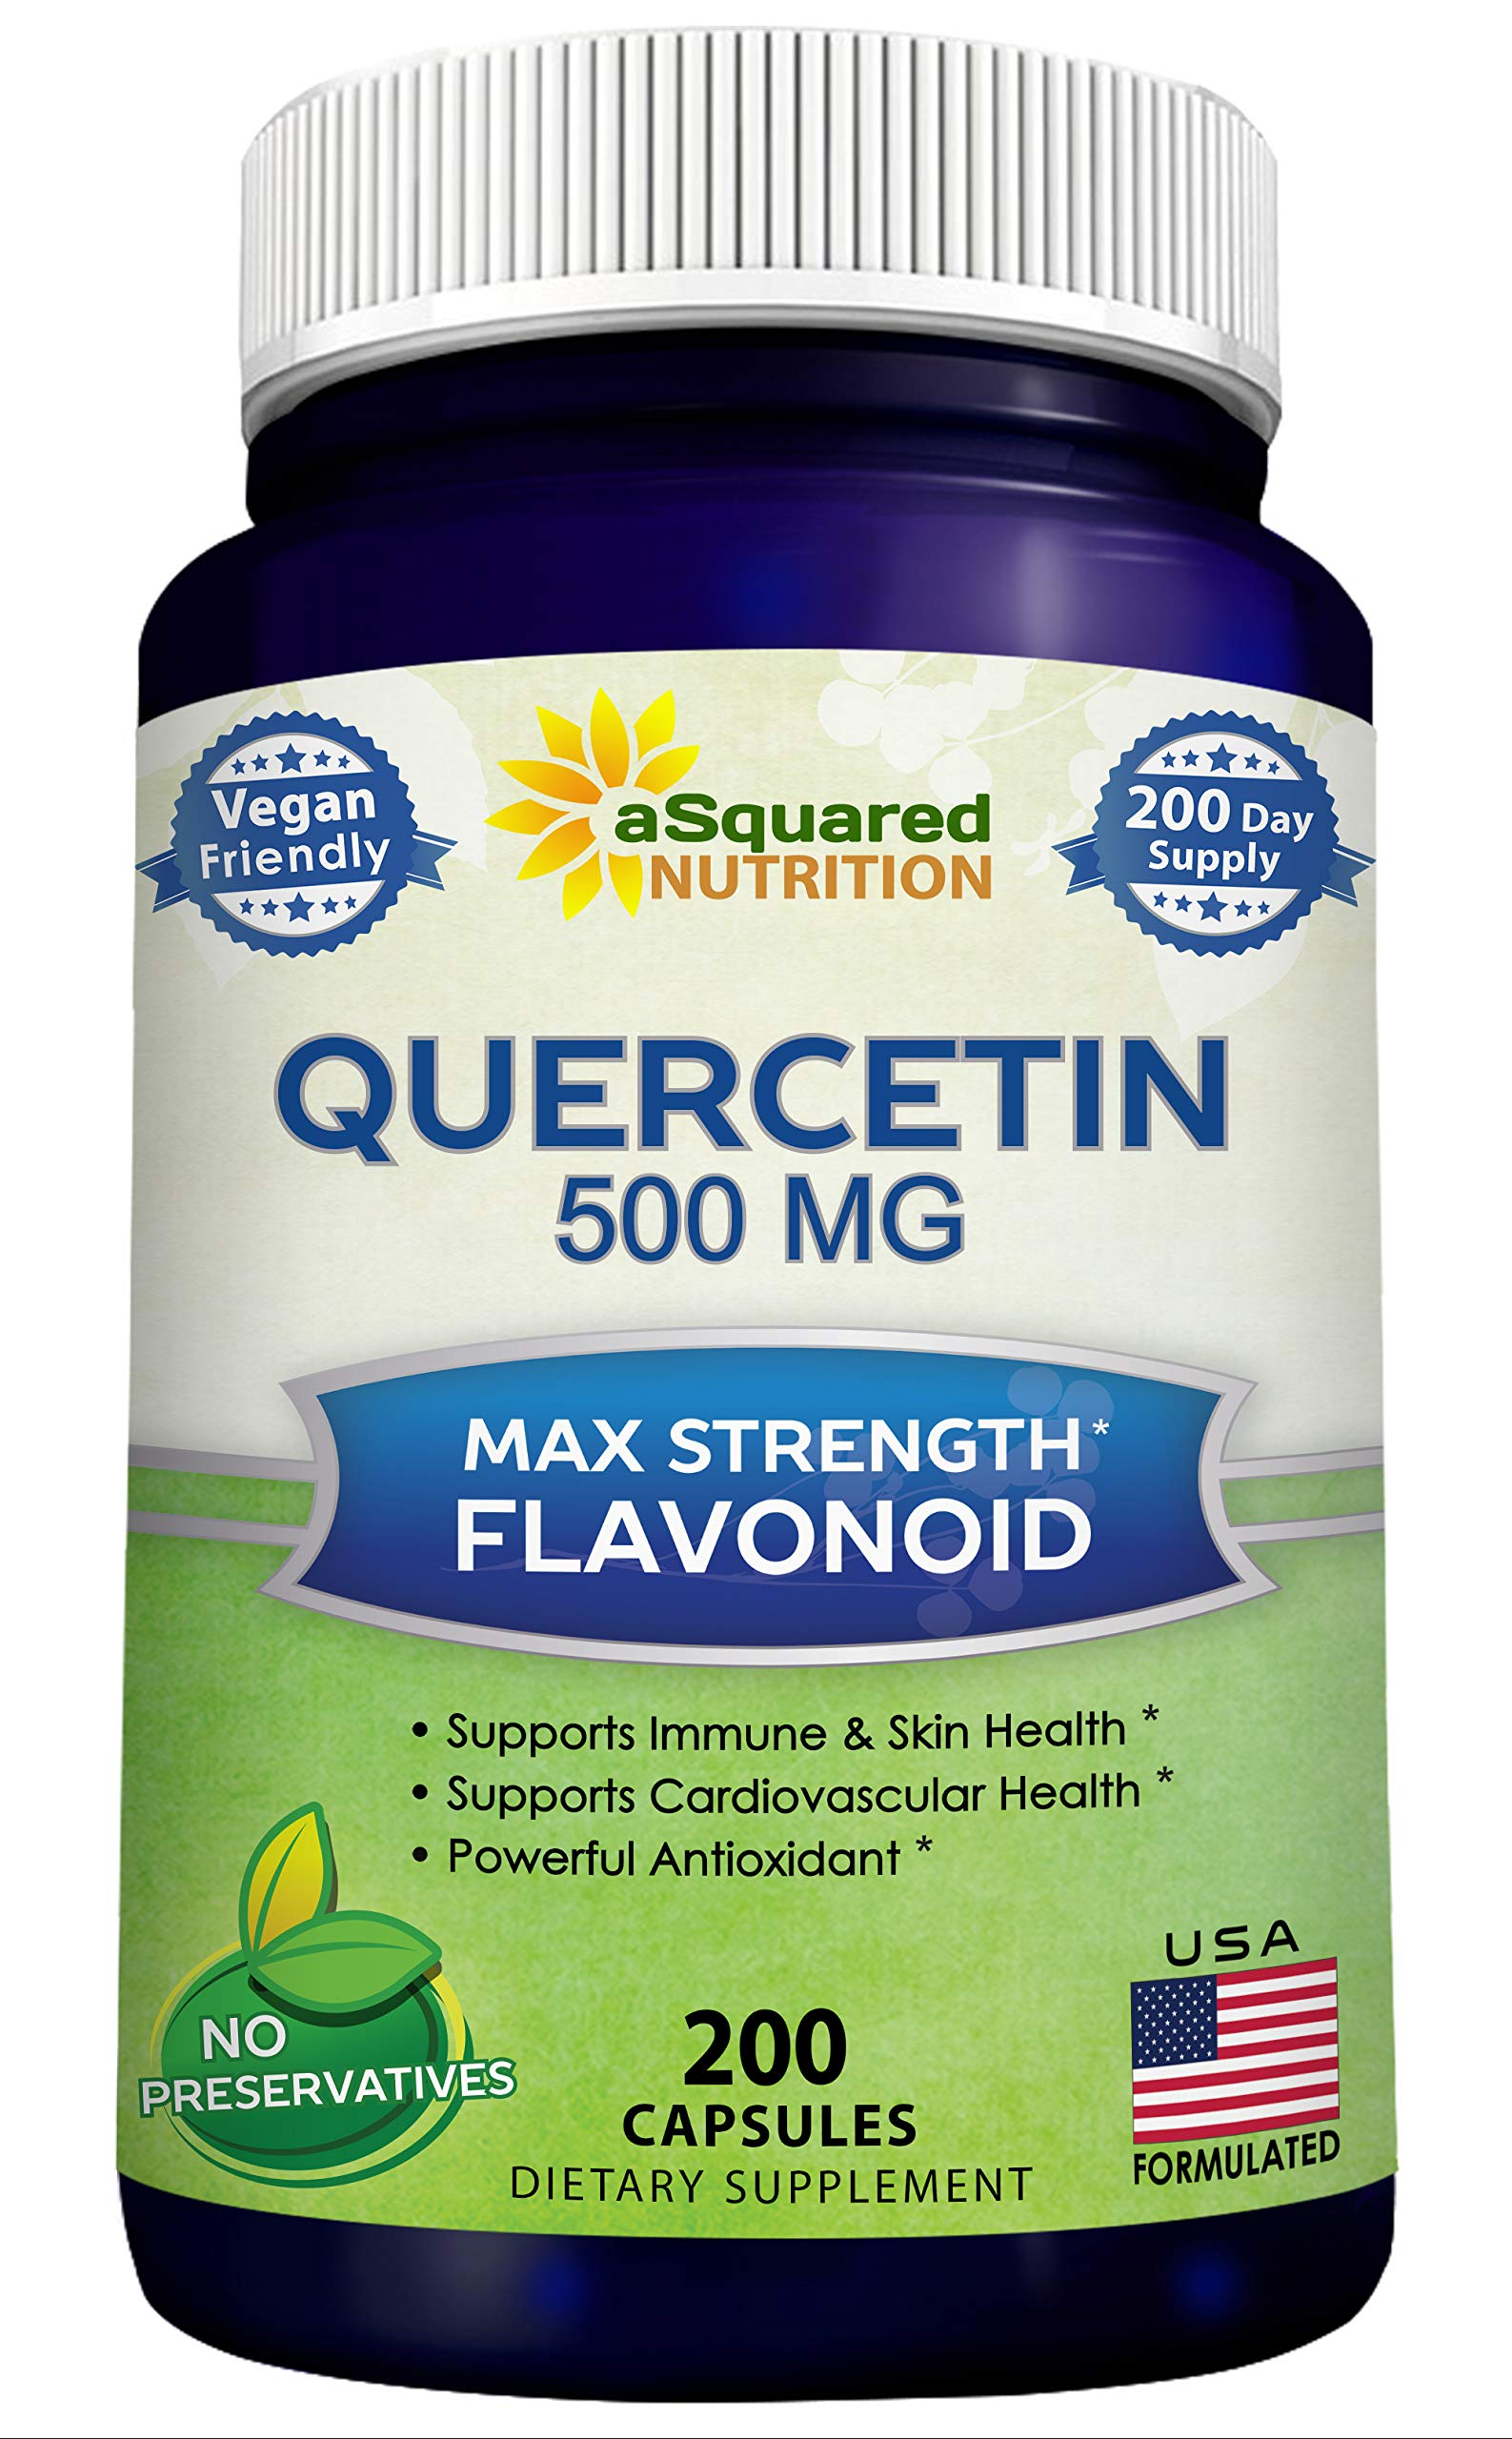 Pure Quercetin 500mg Supplement - 200 Capsules - Quercetin Dihydrate to Support Cardiovascular Health - Max Strength Powder Complex Pills to Help Improve Anti-Inflammatory & Immune Response by aSquared Nutrition